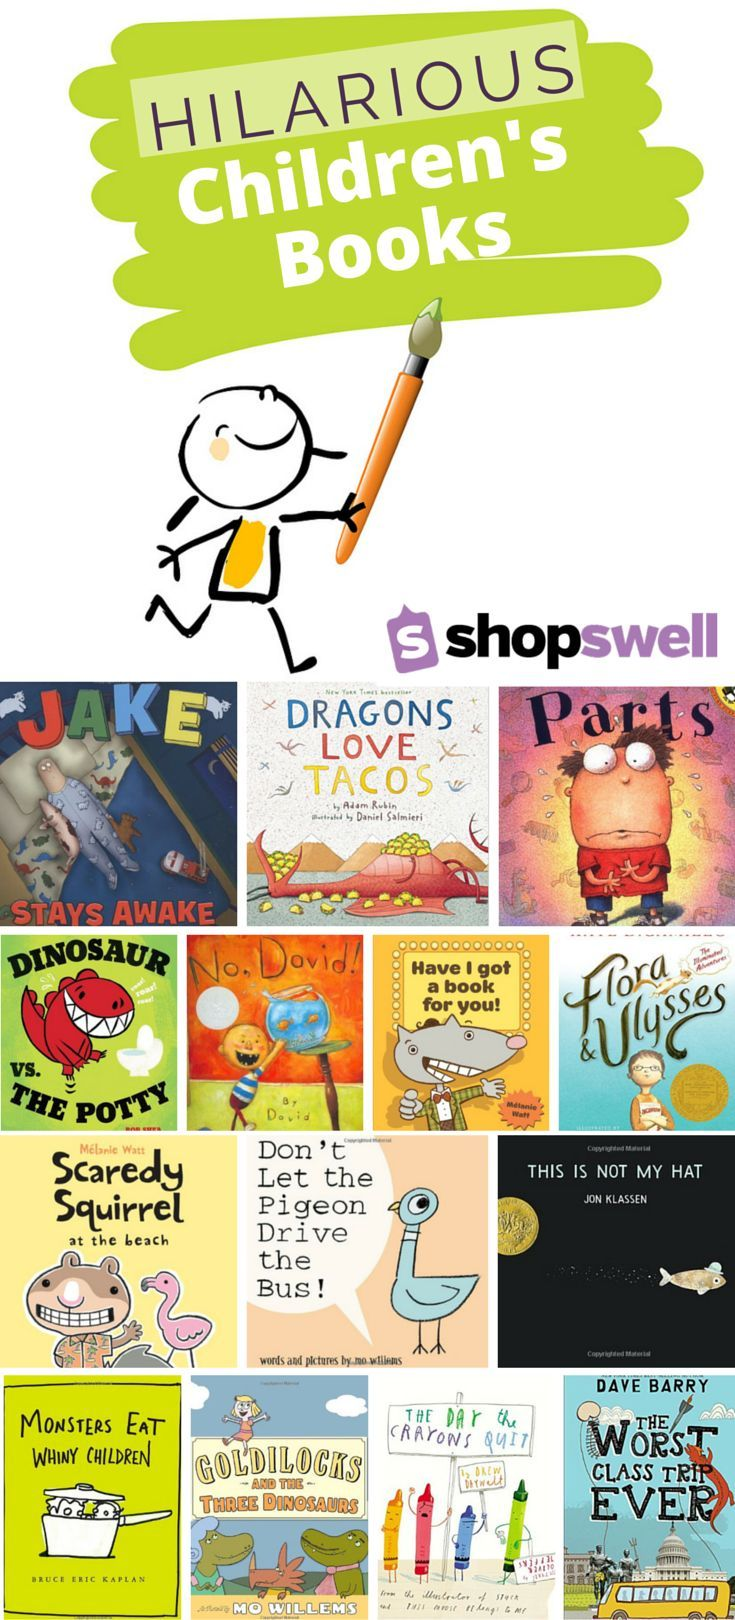 These laugh out loud picture books make reading aloud a fun affair for everyone.